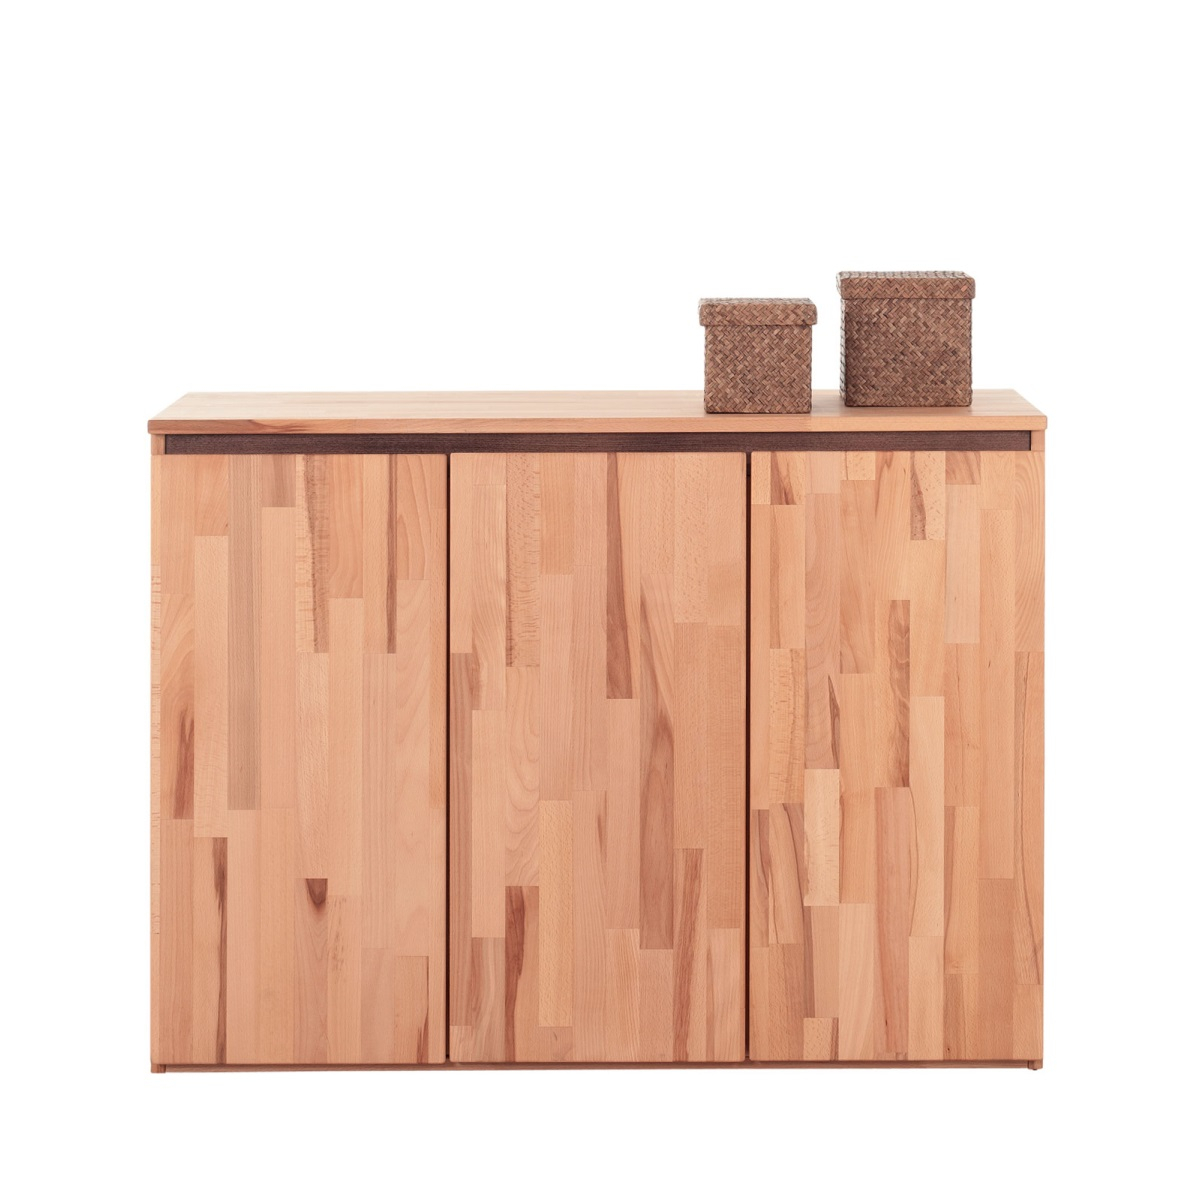 Wohnzimmerkommoden & Sideboard | Porta! Shop For Most Recent Clifton Sideboards (View 18 of 20)